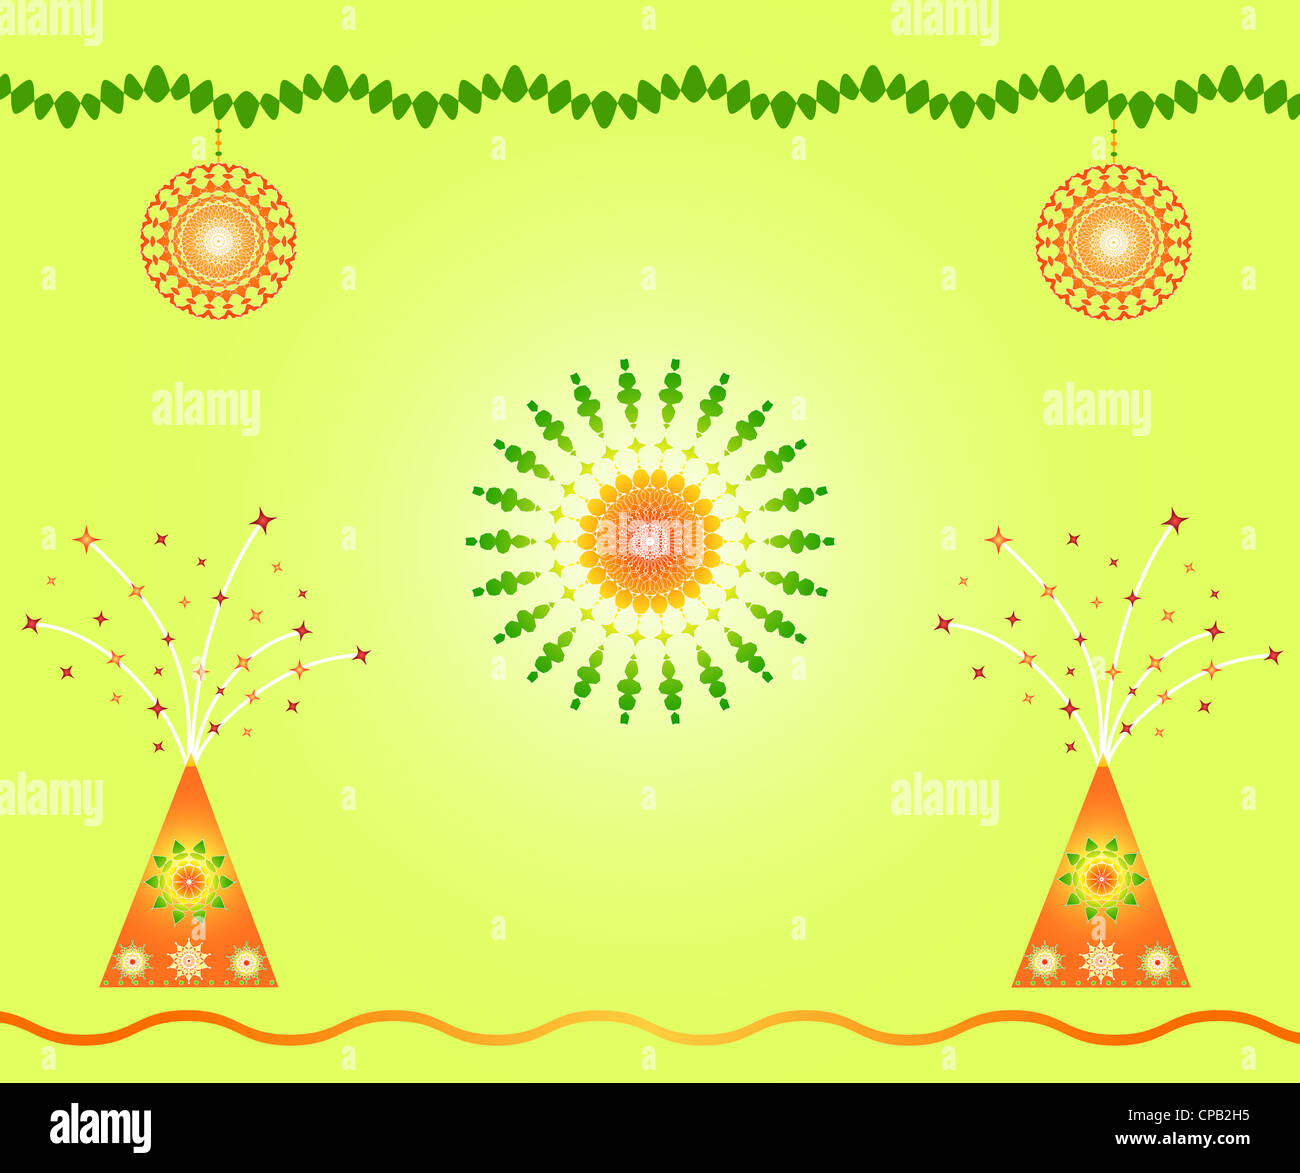 Indian Festival Decoration Indian Festival Decoration And Celebration Fireworks Stock Photo